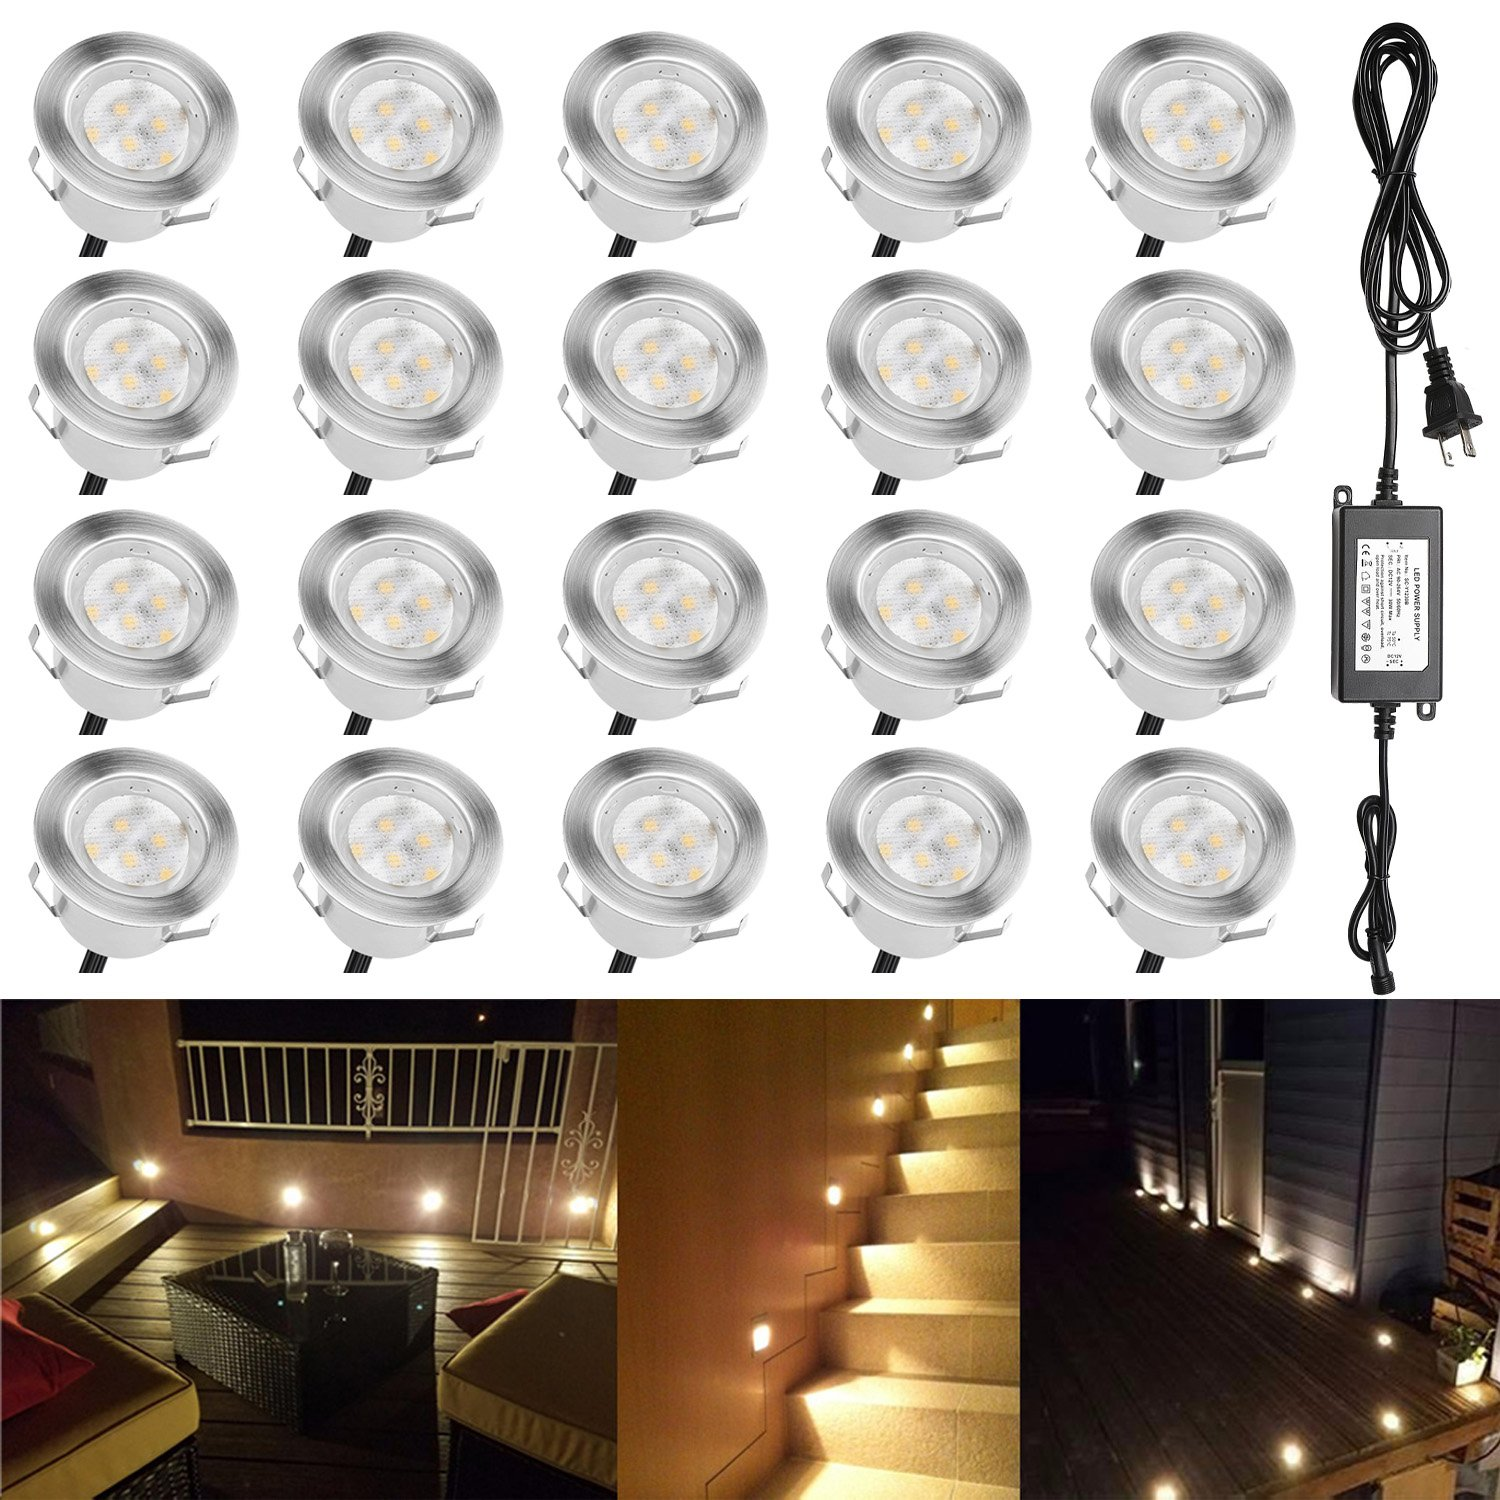 QACA Low Voltage LED Deck Lighting Kit Stainless Steel 1W Waterproof Outdoor Yard Garden Decoration Lamps Landscape Pathway Patio Step Stairs Warm White LED In-ground Lights, Pack of 20